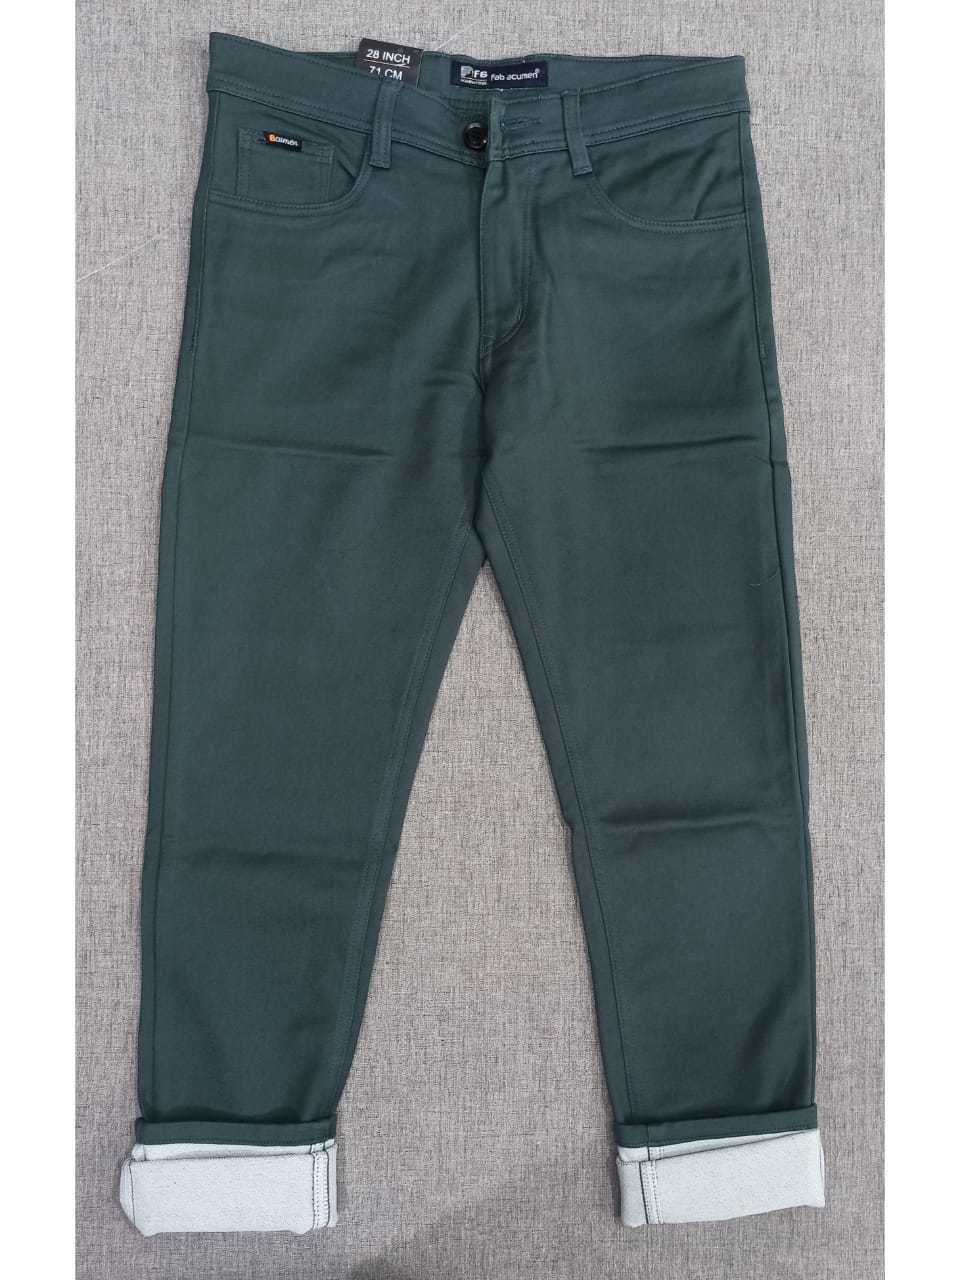 Slim Fit Solid Cotton Casual with Jeans Pocket